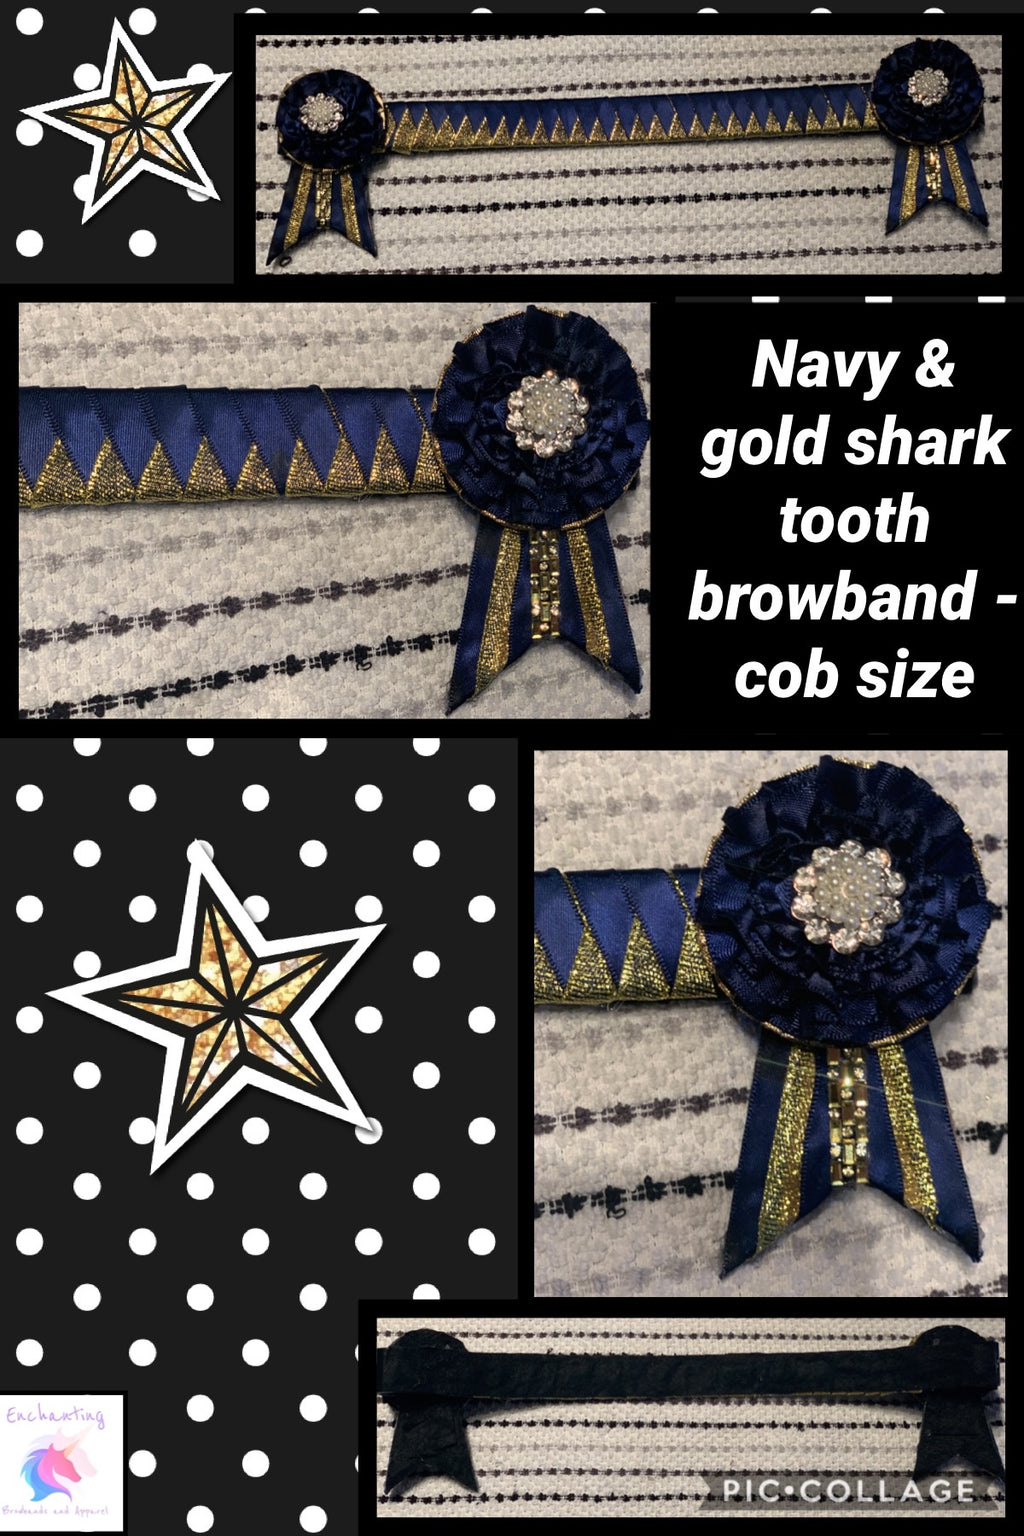 Navy & gold browband